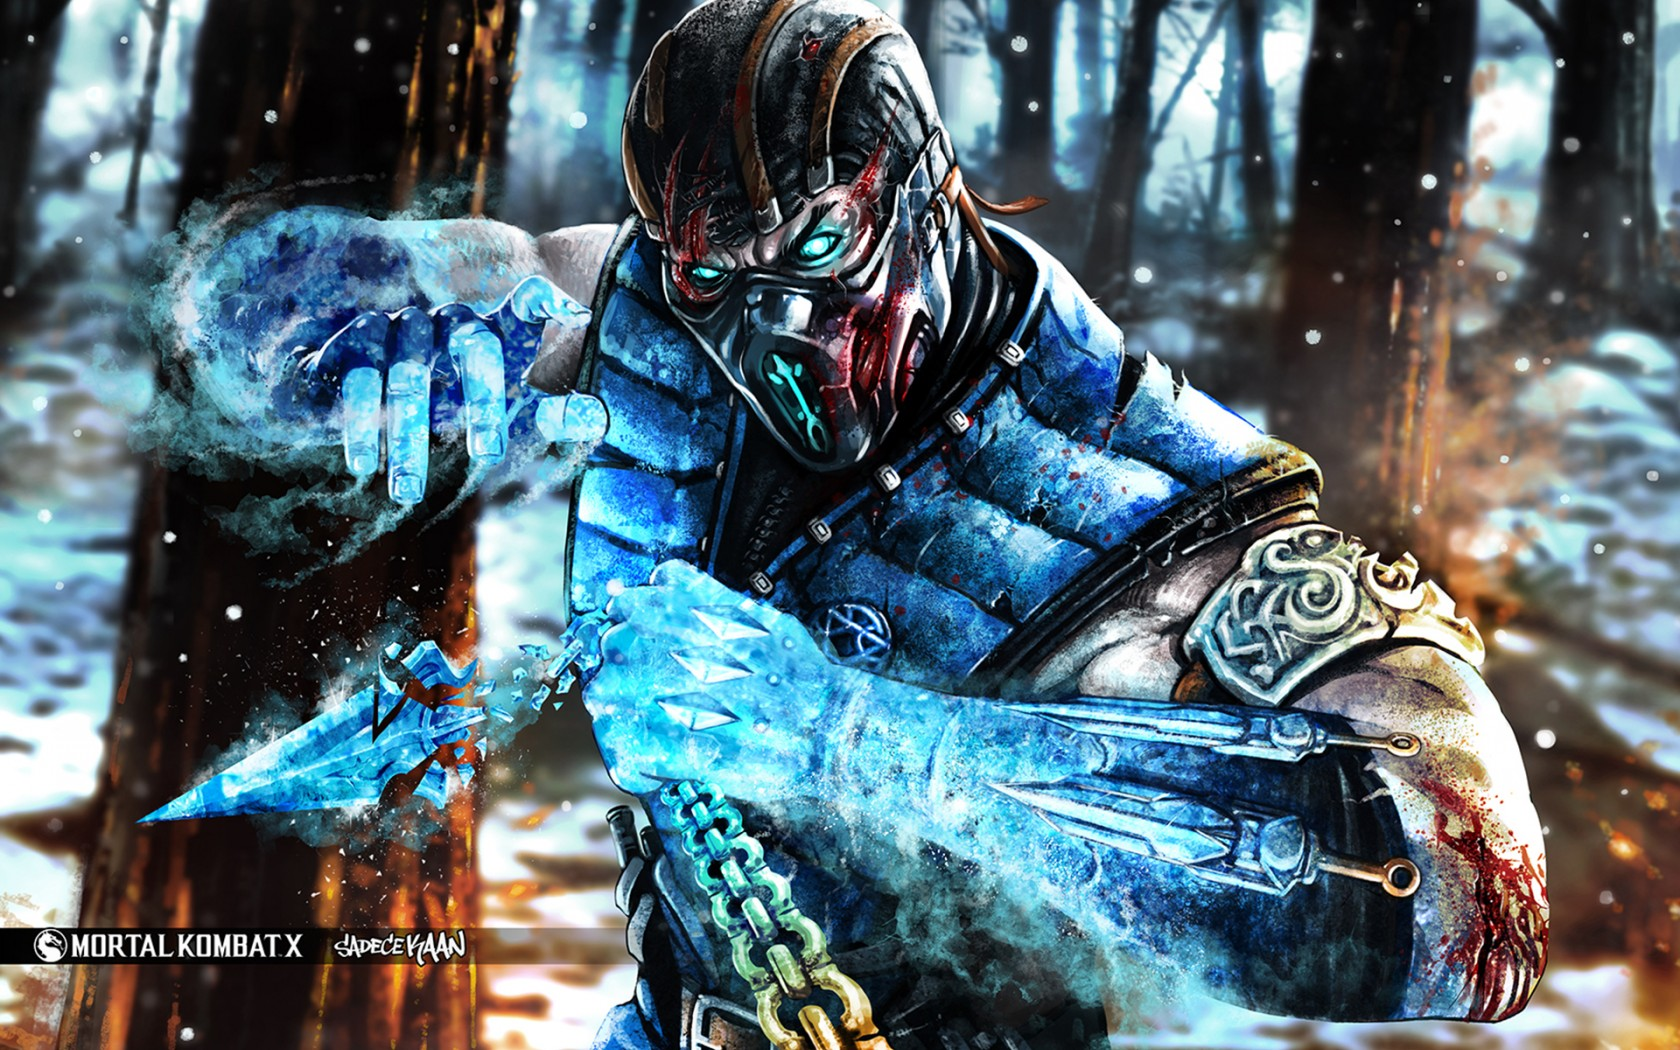 Mortal Kombat wallpaper Sub-Zero 16